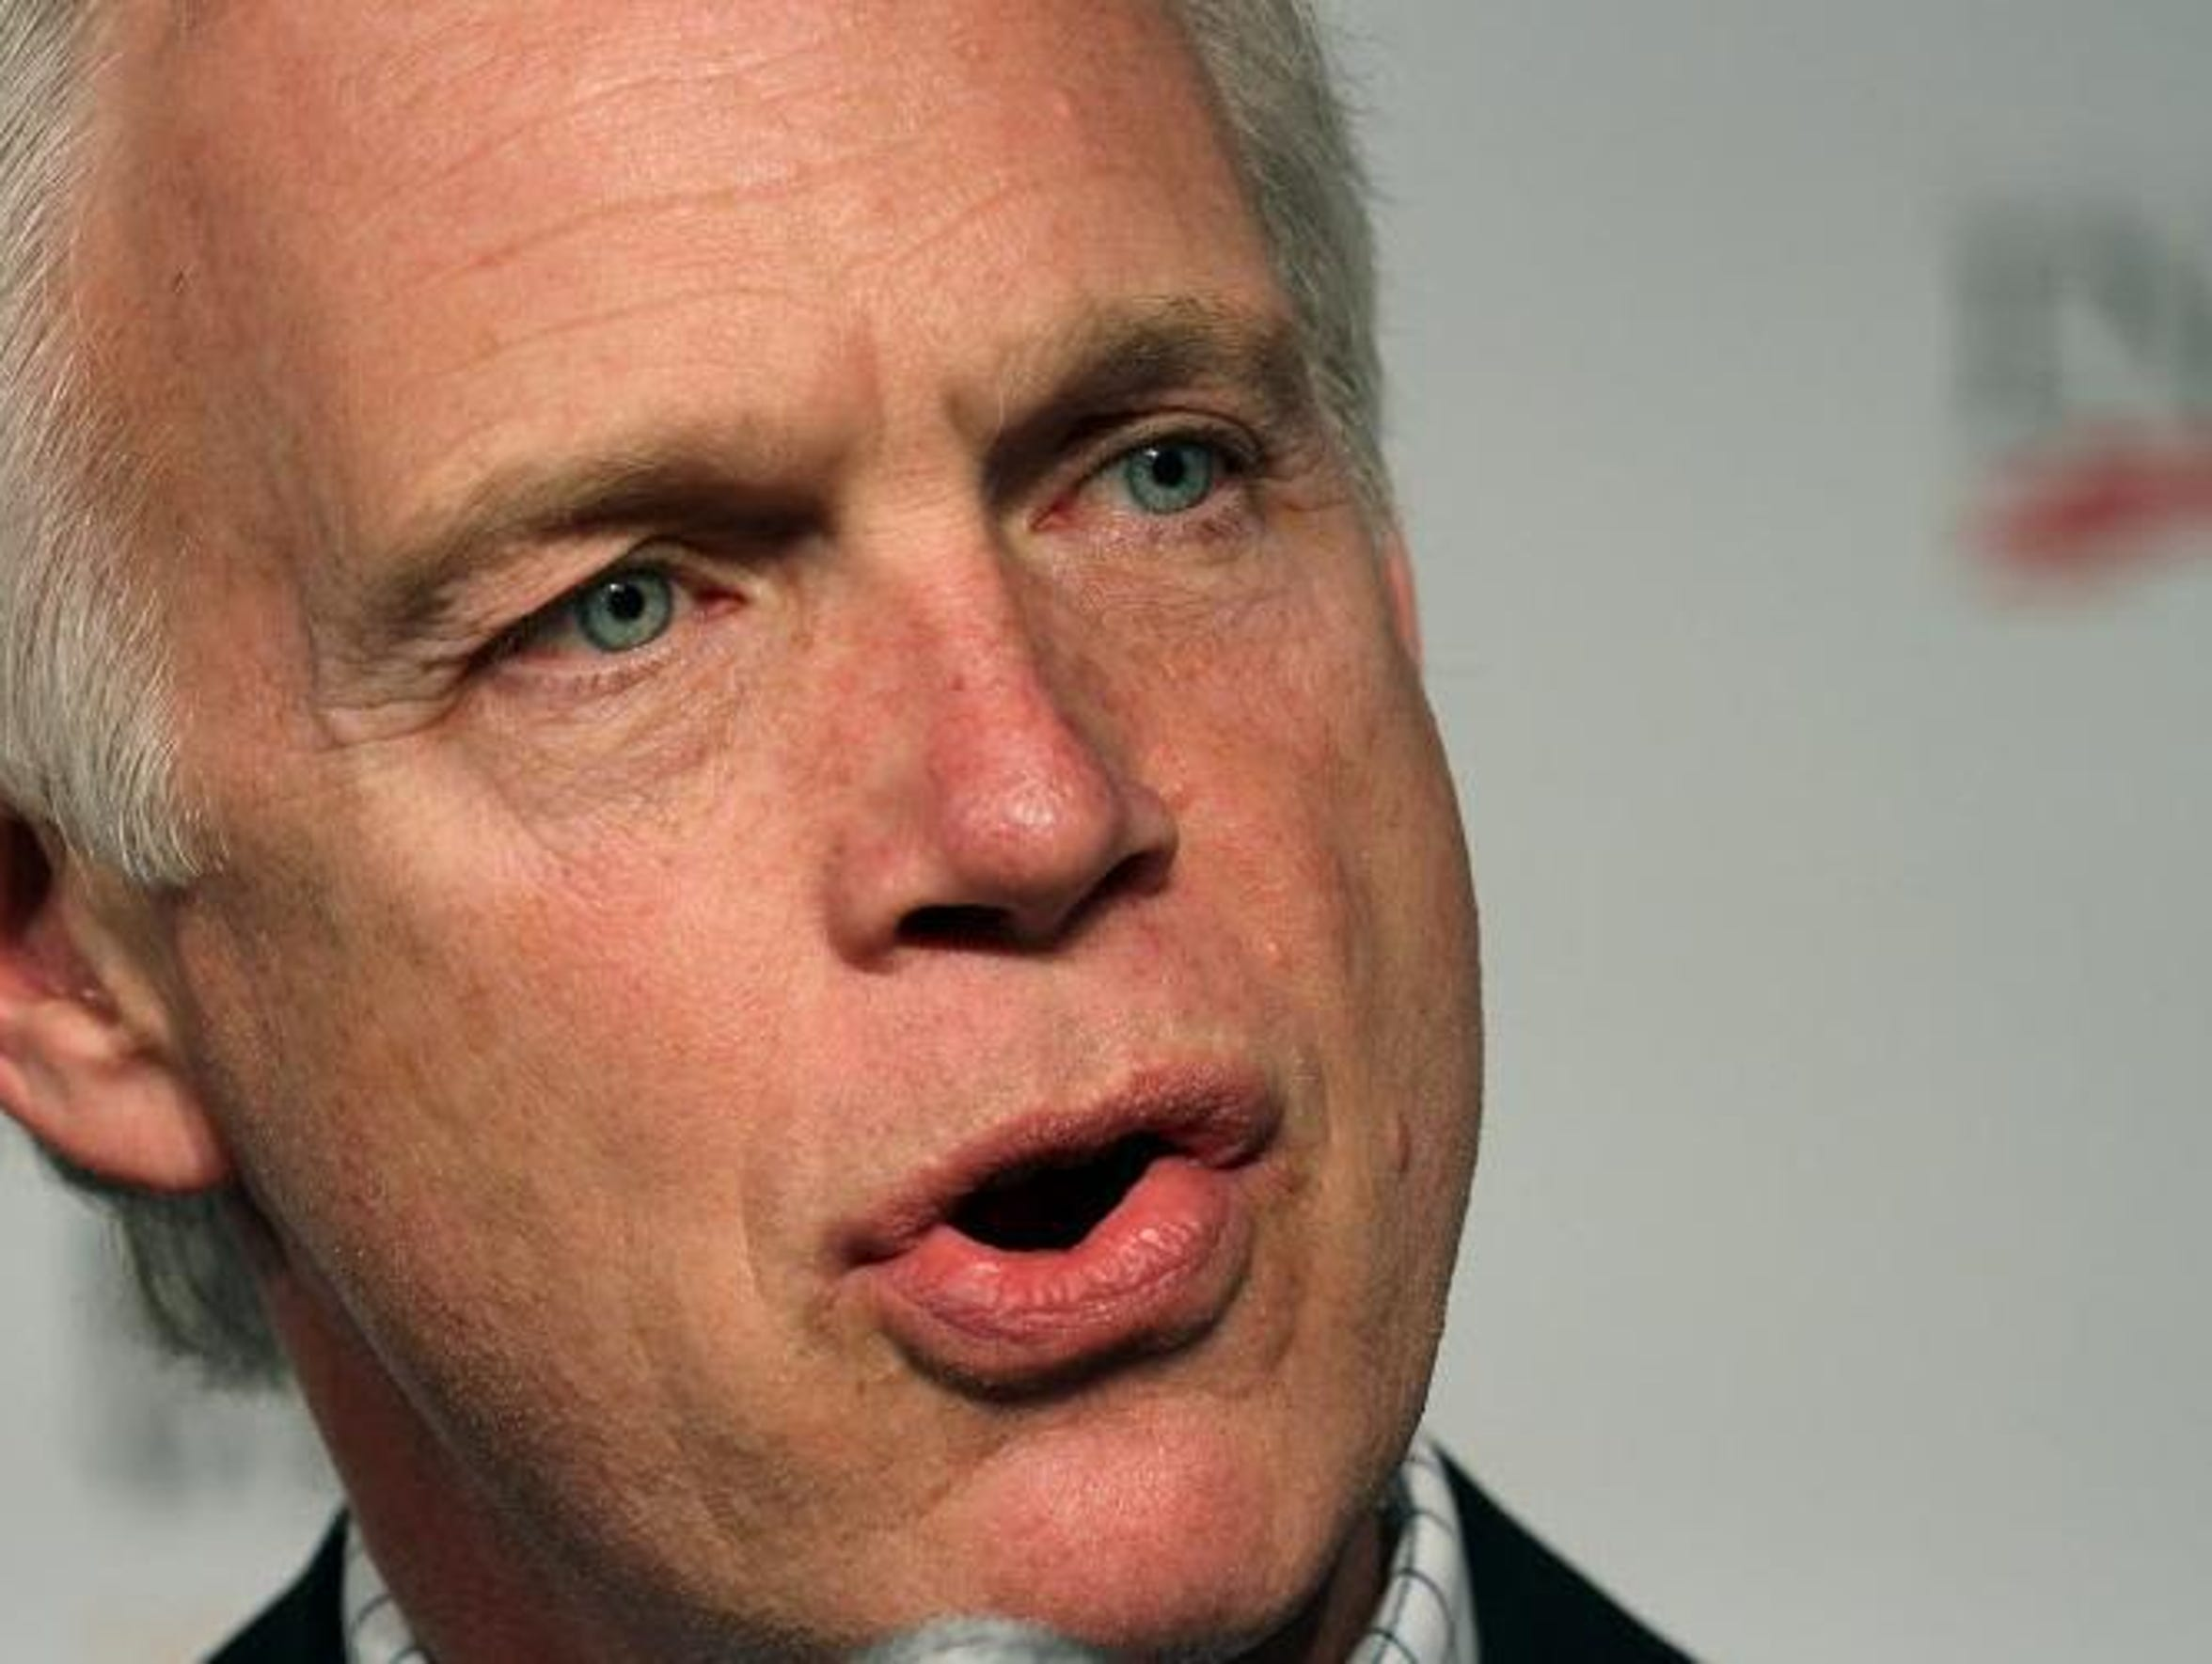 """The election interference ... is not the greatest threat to our democracy. We've blown it way out of proportion,"" Sen. Ron Johnson told the Washington Examiner."